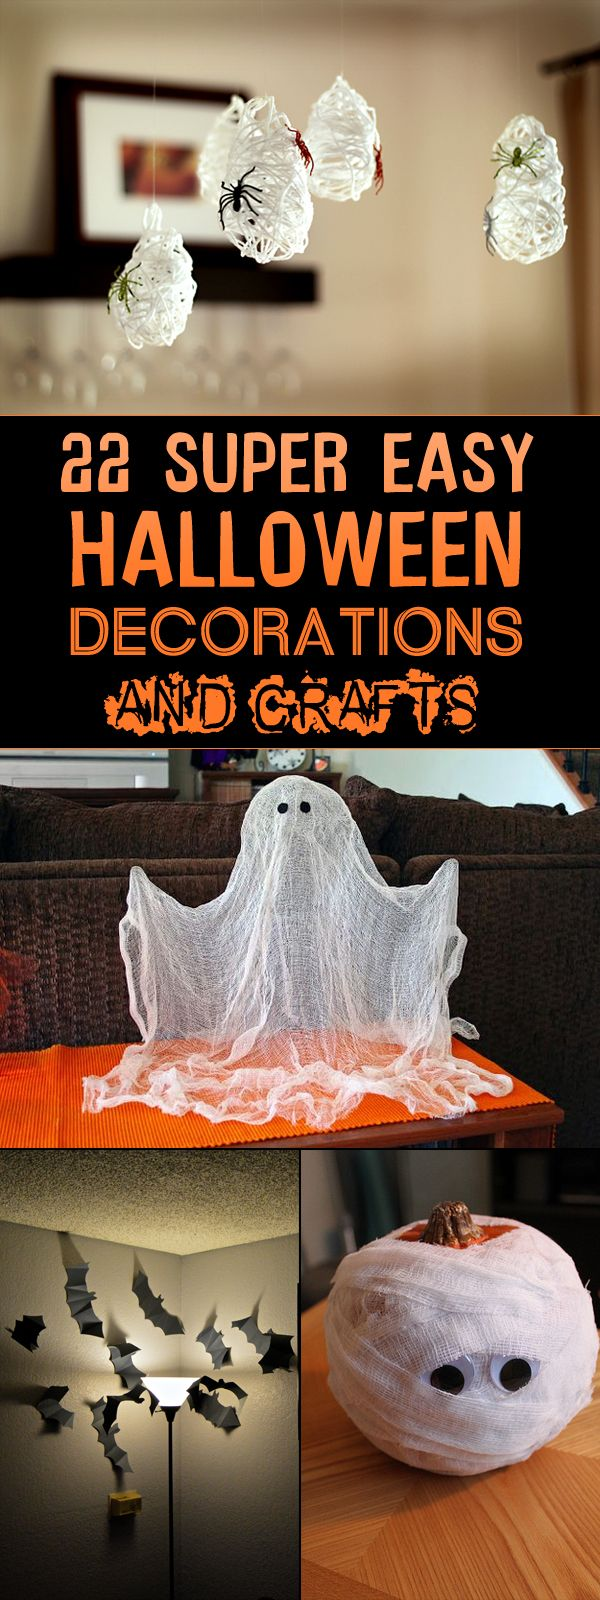 best ideas about halloween office decorations 22 super easy halloween decorations and crafts you can make yourself